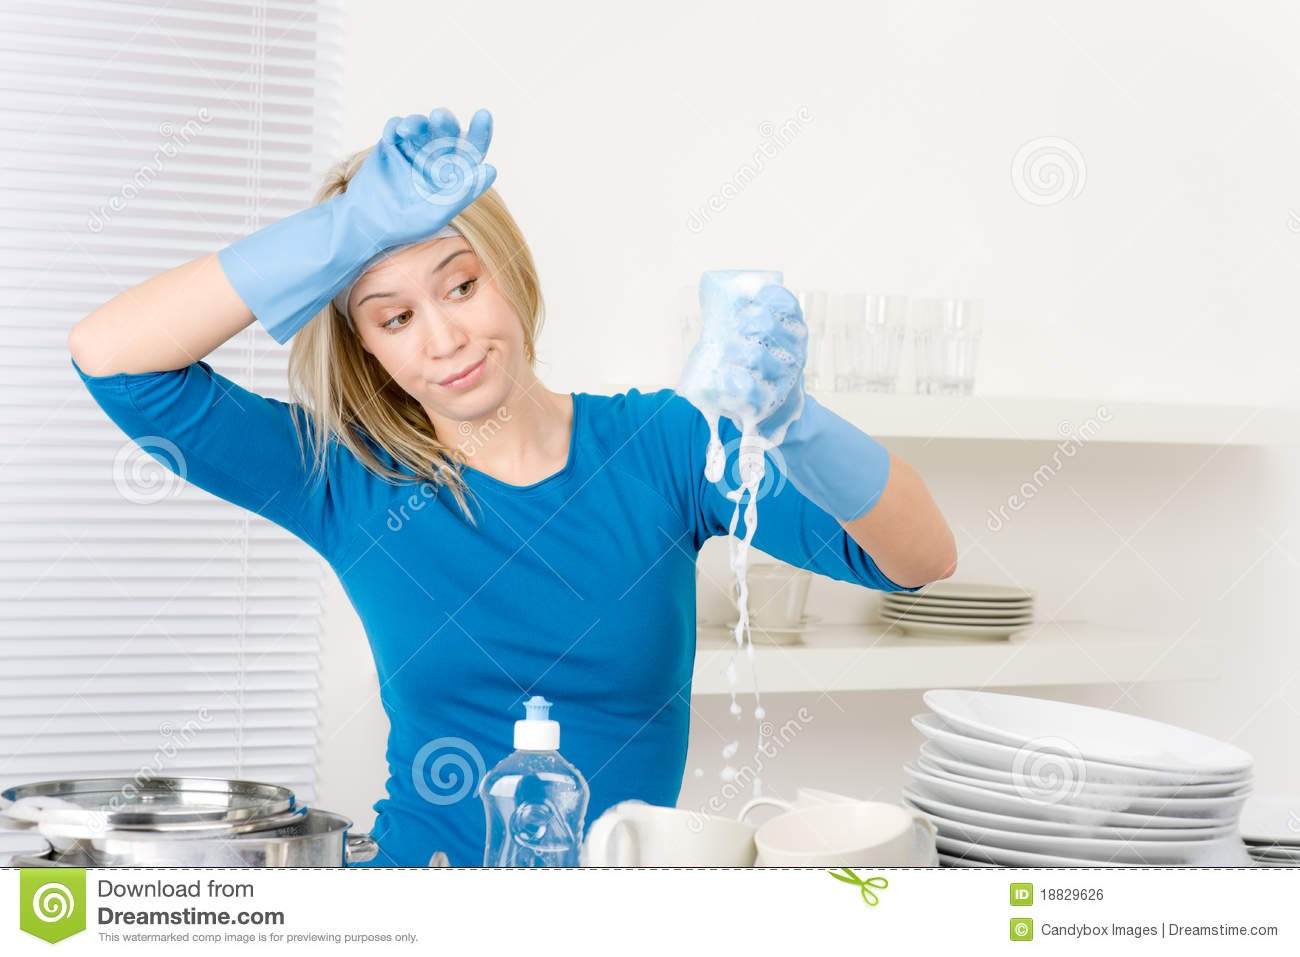 Wash dishes as they're used. If you have a dishwasher, just wait til it is full and run it. Once they are washed, dry them off and then put them away. Then there are never unsightly dirty dishes stacking up everywhere.